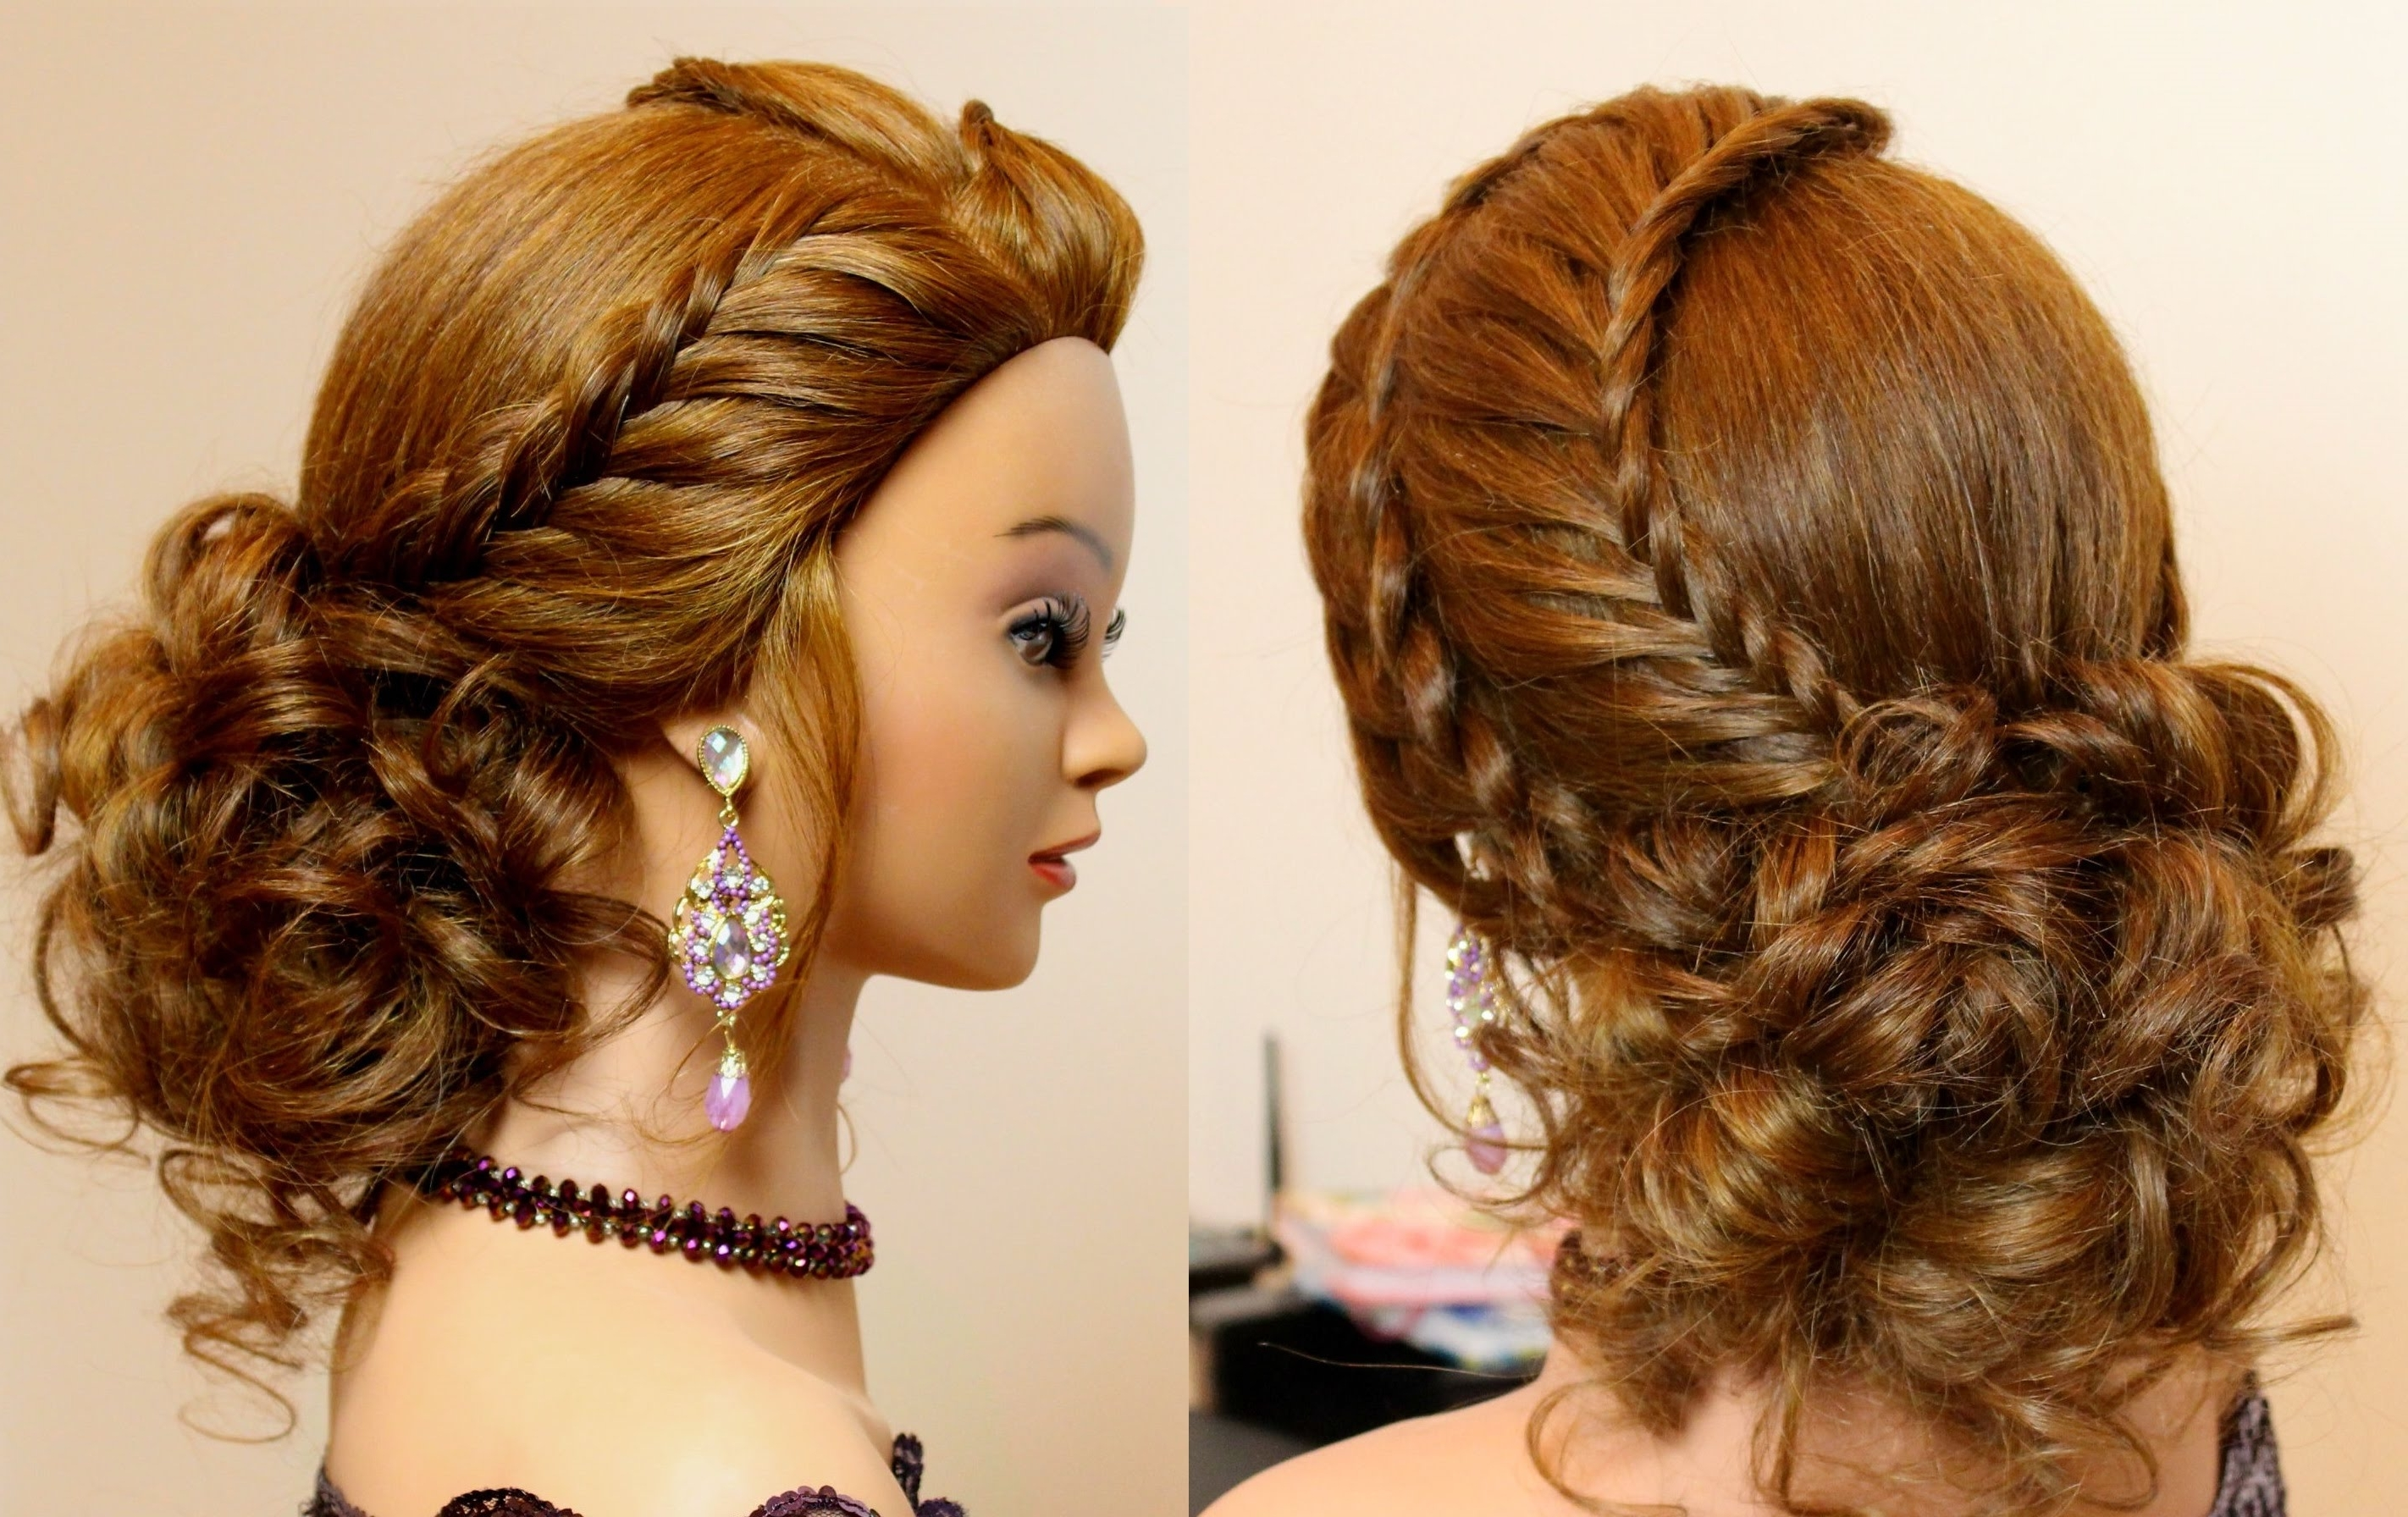 Fancy Hairstyles For Long Hair Updo Wedding Updos Hairstyle Formal Intended For Easy Hair Updo Hairstyles For Wedding (View 7 of 15)